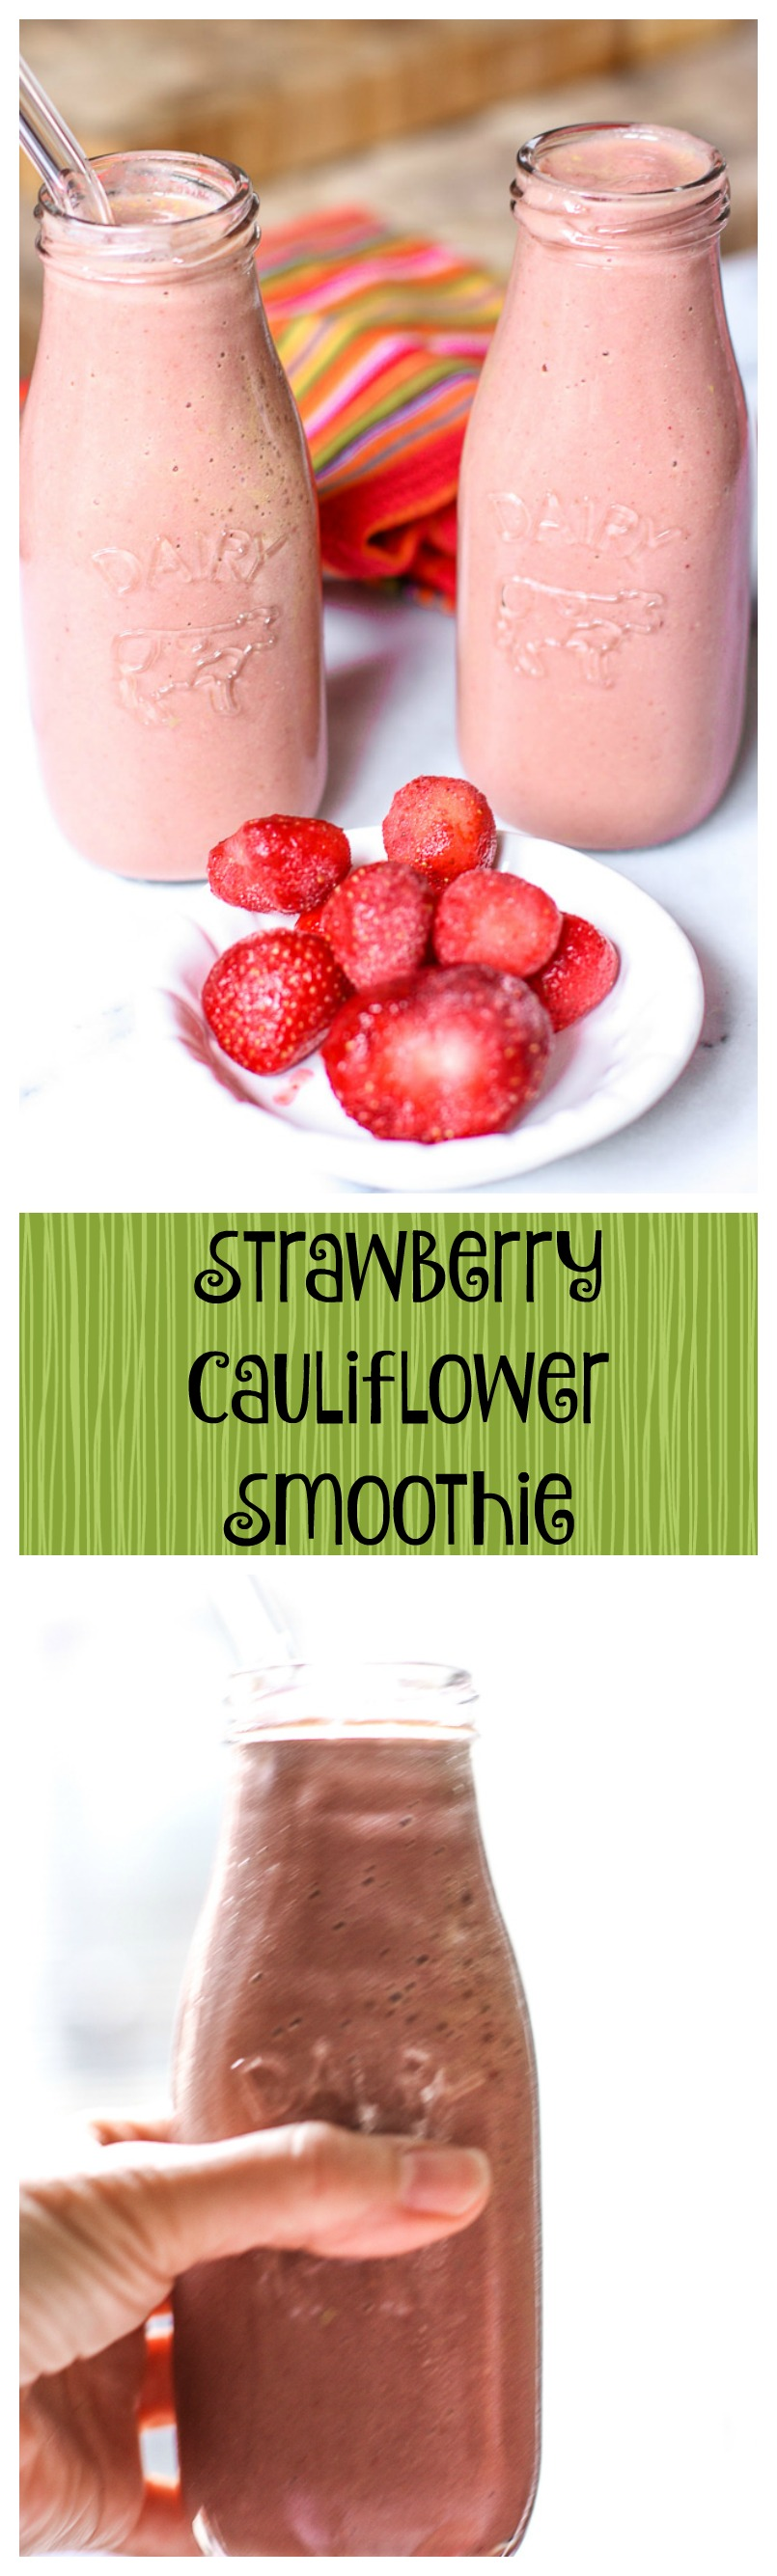 strawberry cauliflower smoothie